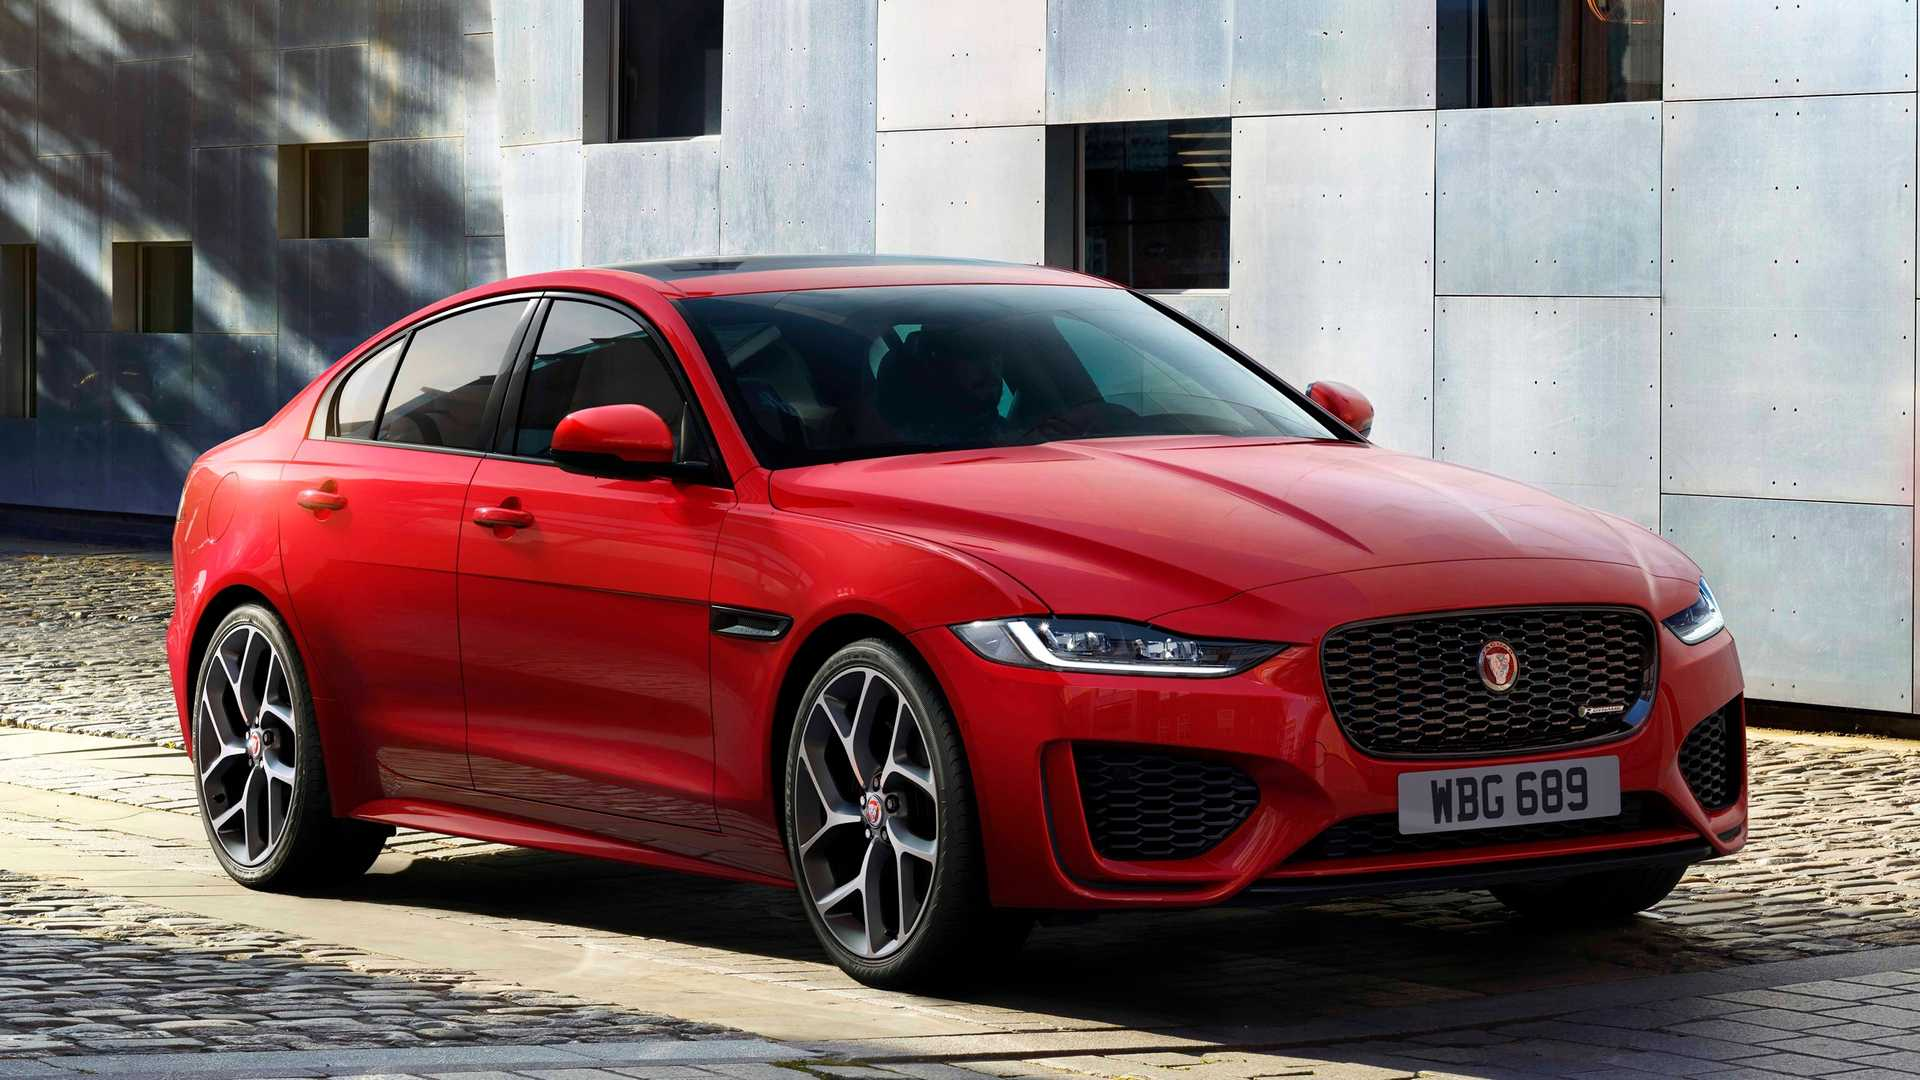 63 A Jaguar Xe 2019 Interior Performance And New Engine